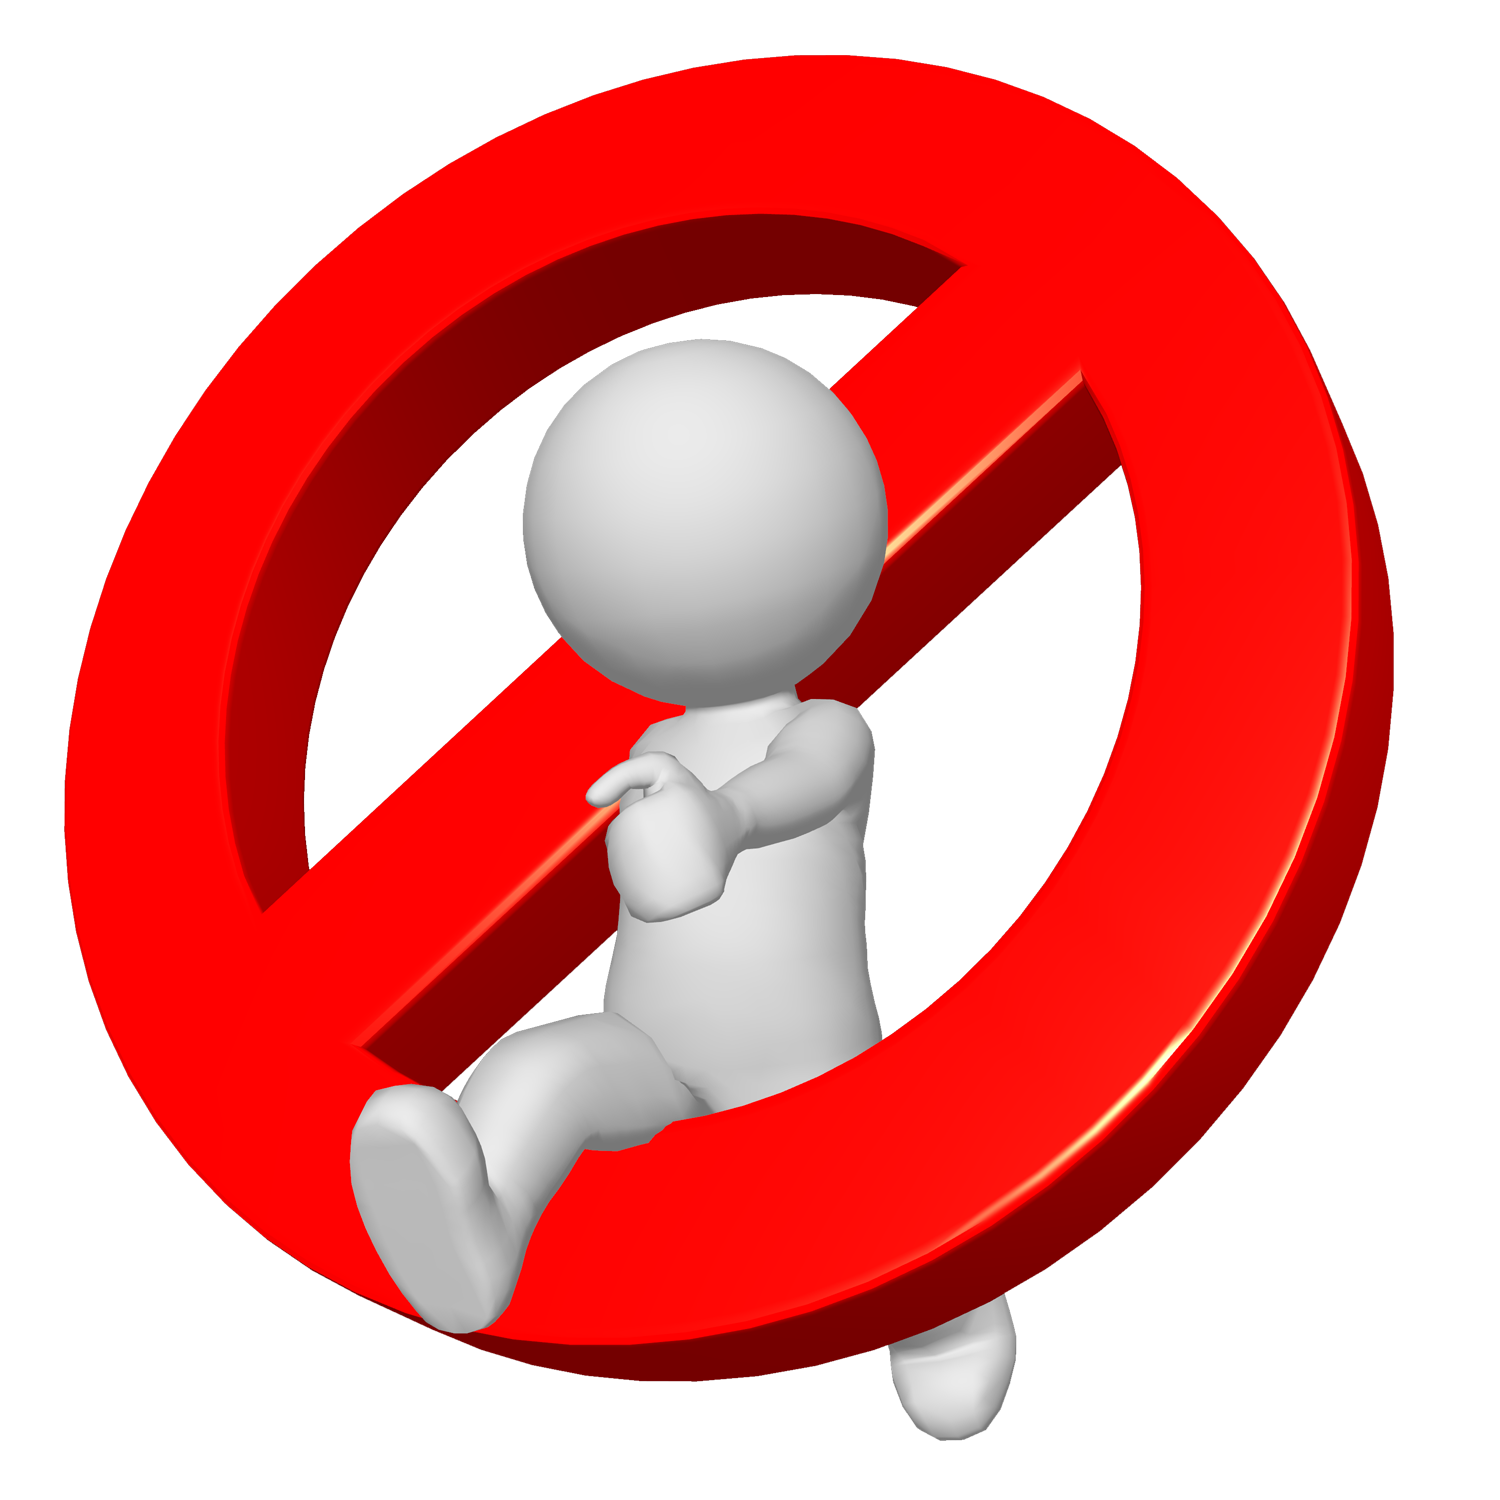 Stop clipart png. Free download images sign